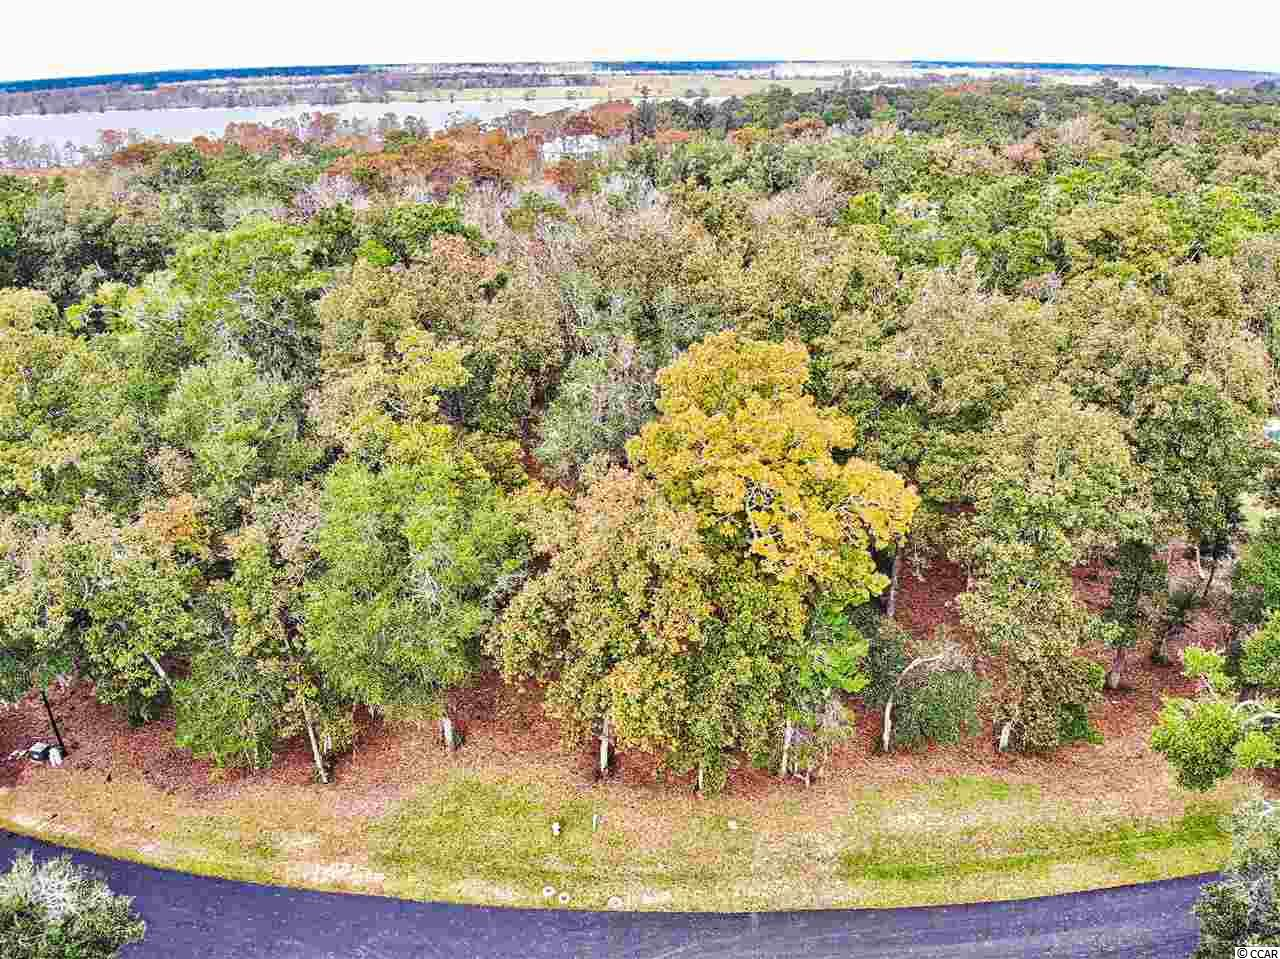 Build your Dream Home in One of the Most Exclusive Gated Neighborhoods in Pawleys Island, Allston Bluffs.  This Beautiful Homesite is Over 1.3 Acres and Backs to Common Area. Each of the 20 Homesites in this Small neighborhood has a Dedicated Boat Slip in the Community's Private Marina.  The Clubhouse Overlooking the Waccamaw River, with its Wood Burning Fireplace and Full Kitchen, is the Perfect Spot for Entertaining after a Cruise on The River.   The Neighborhood is Lined with Live Oaks Draped in Spanish Moss.  Truly a Southern Showcase.  Located Just a 10 Minute Drive to Georgetown, 25 Miles to Myrtle Beach and under 70 Miles to Charleston make this an Ideal Location.